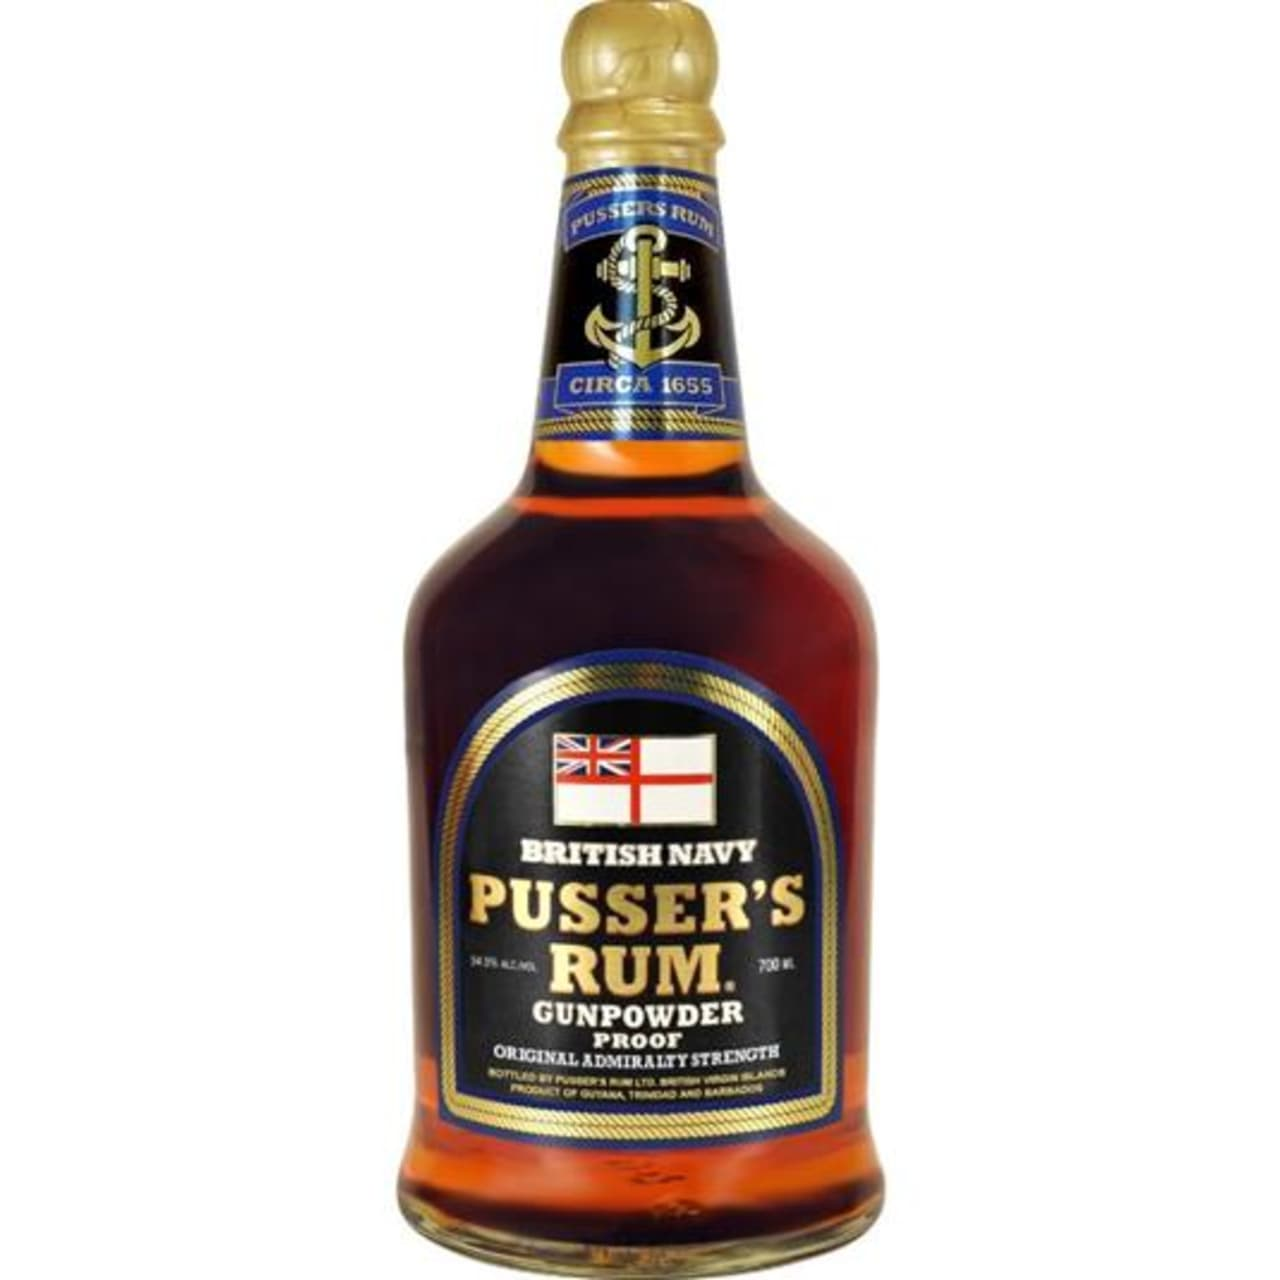 Product Image - Pusser's Rum Gunpowder Proof Rum